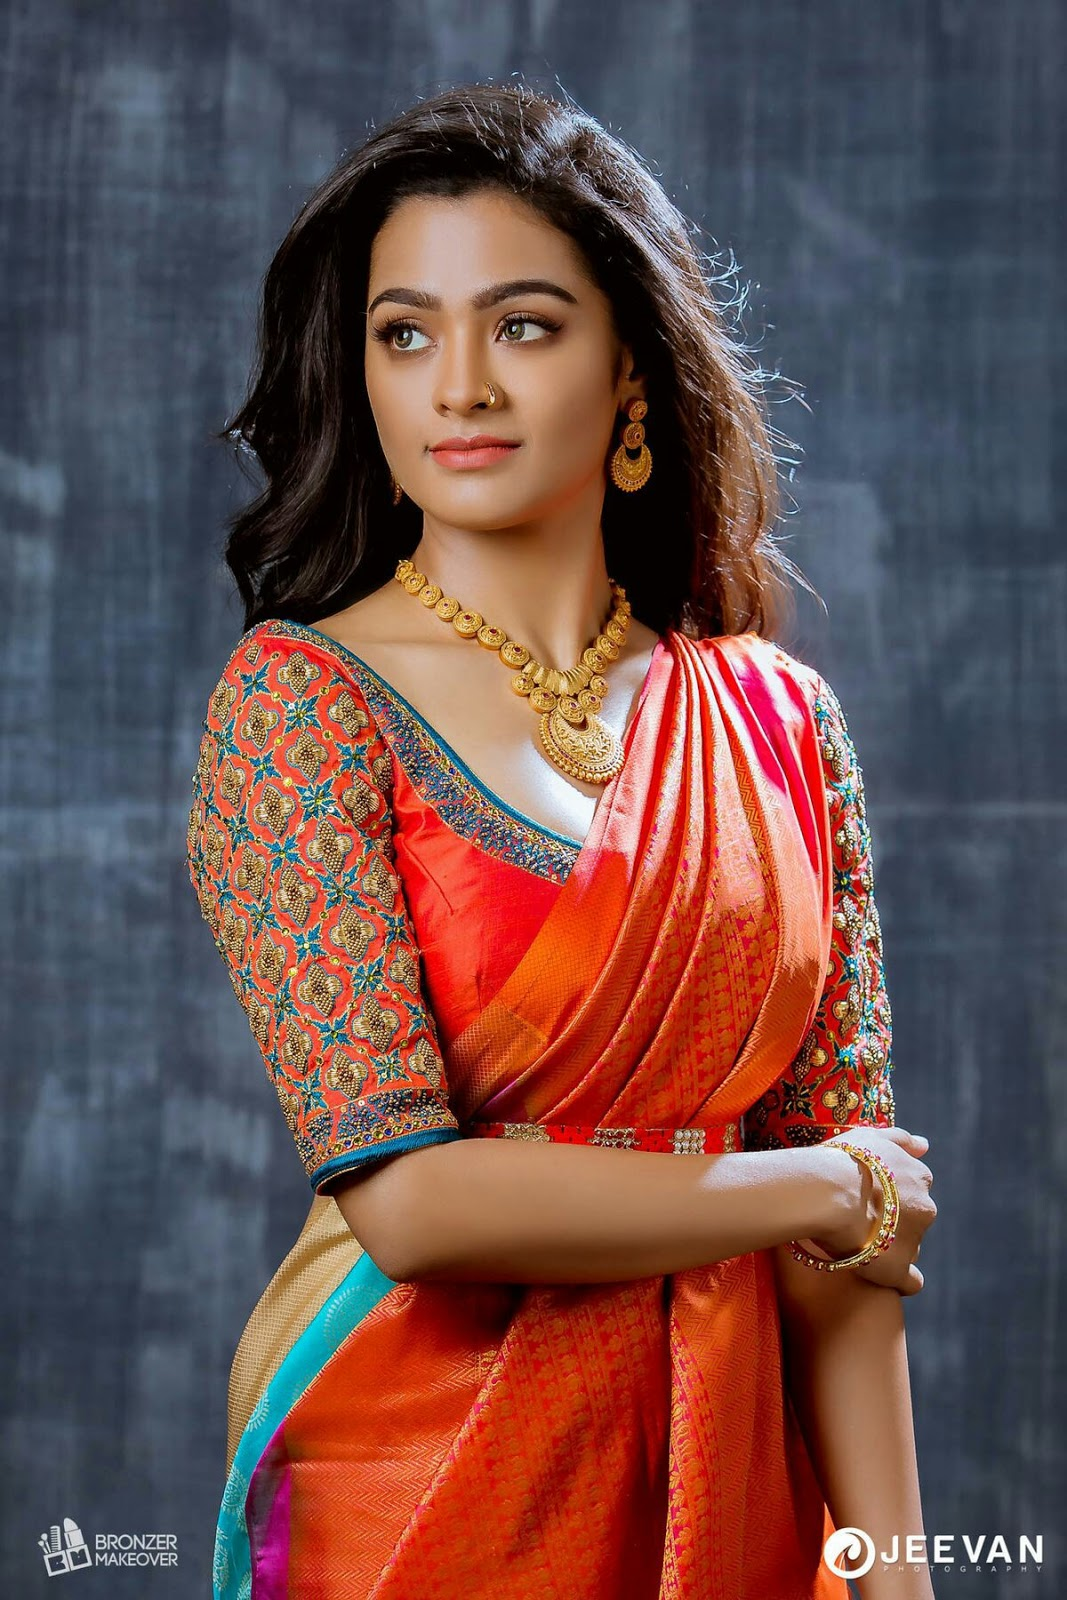 50+ Hottest HD Photos of Beautiful Indian Women in Saree!